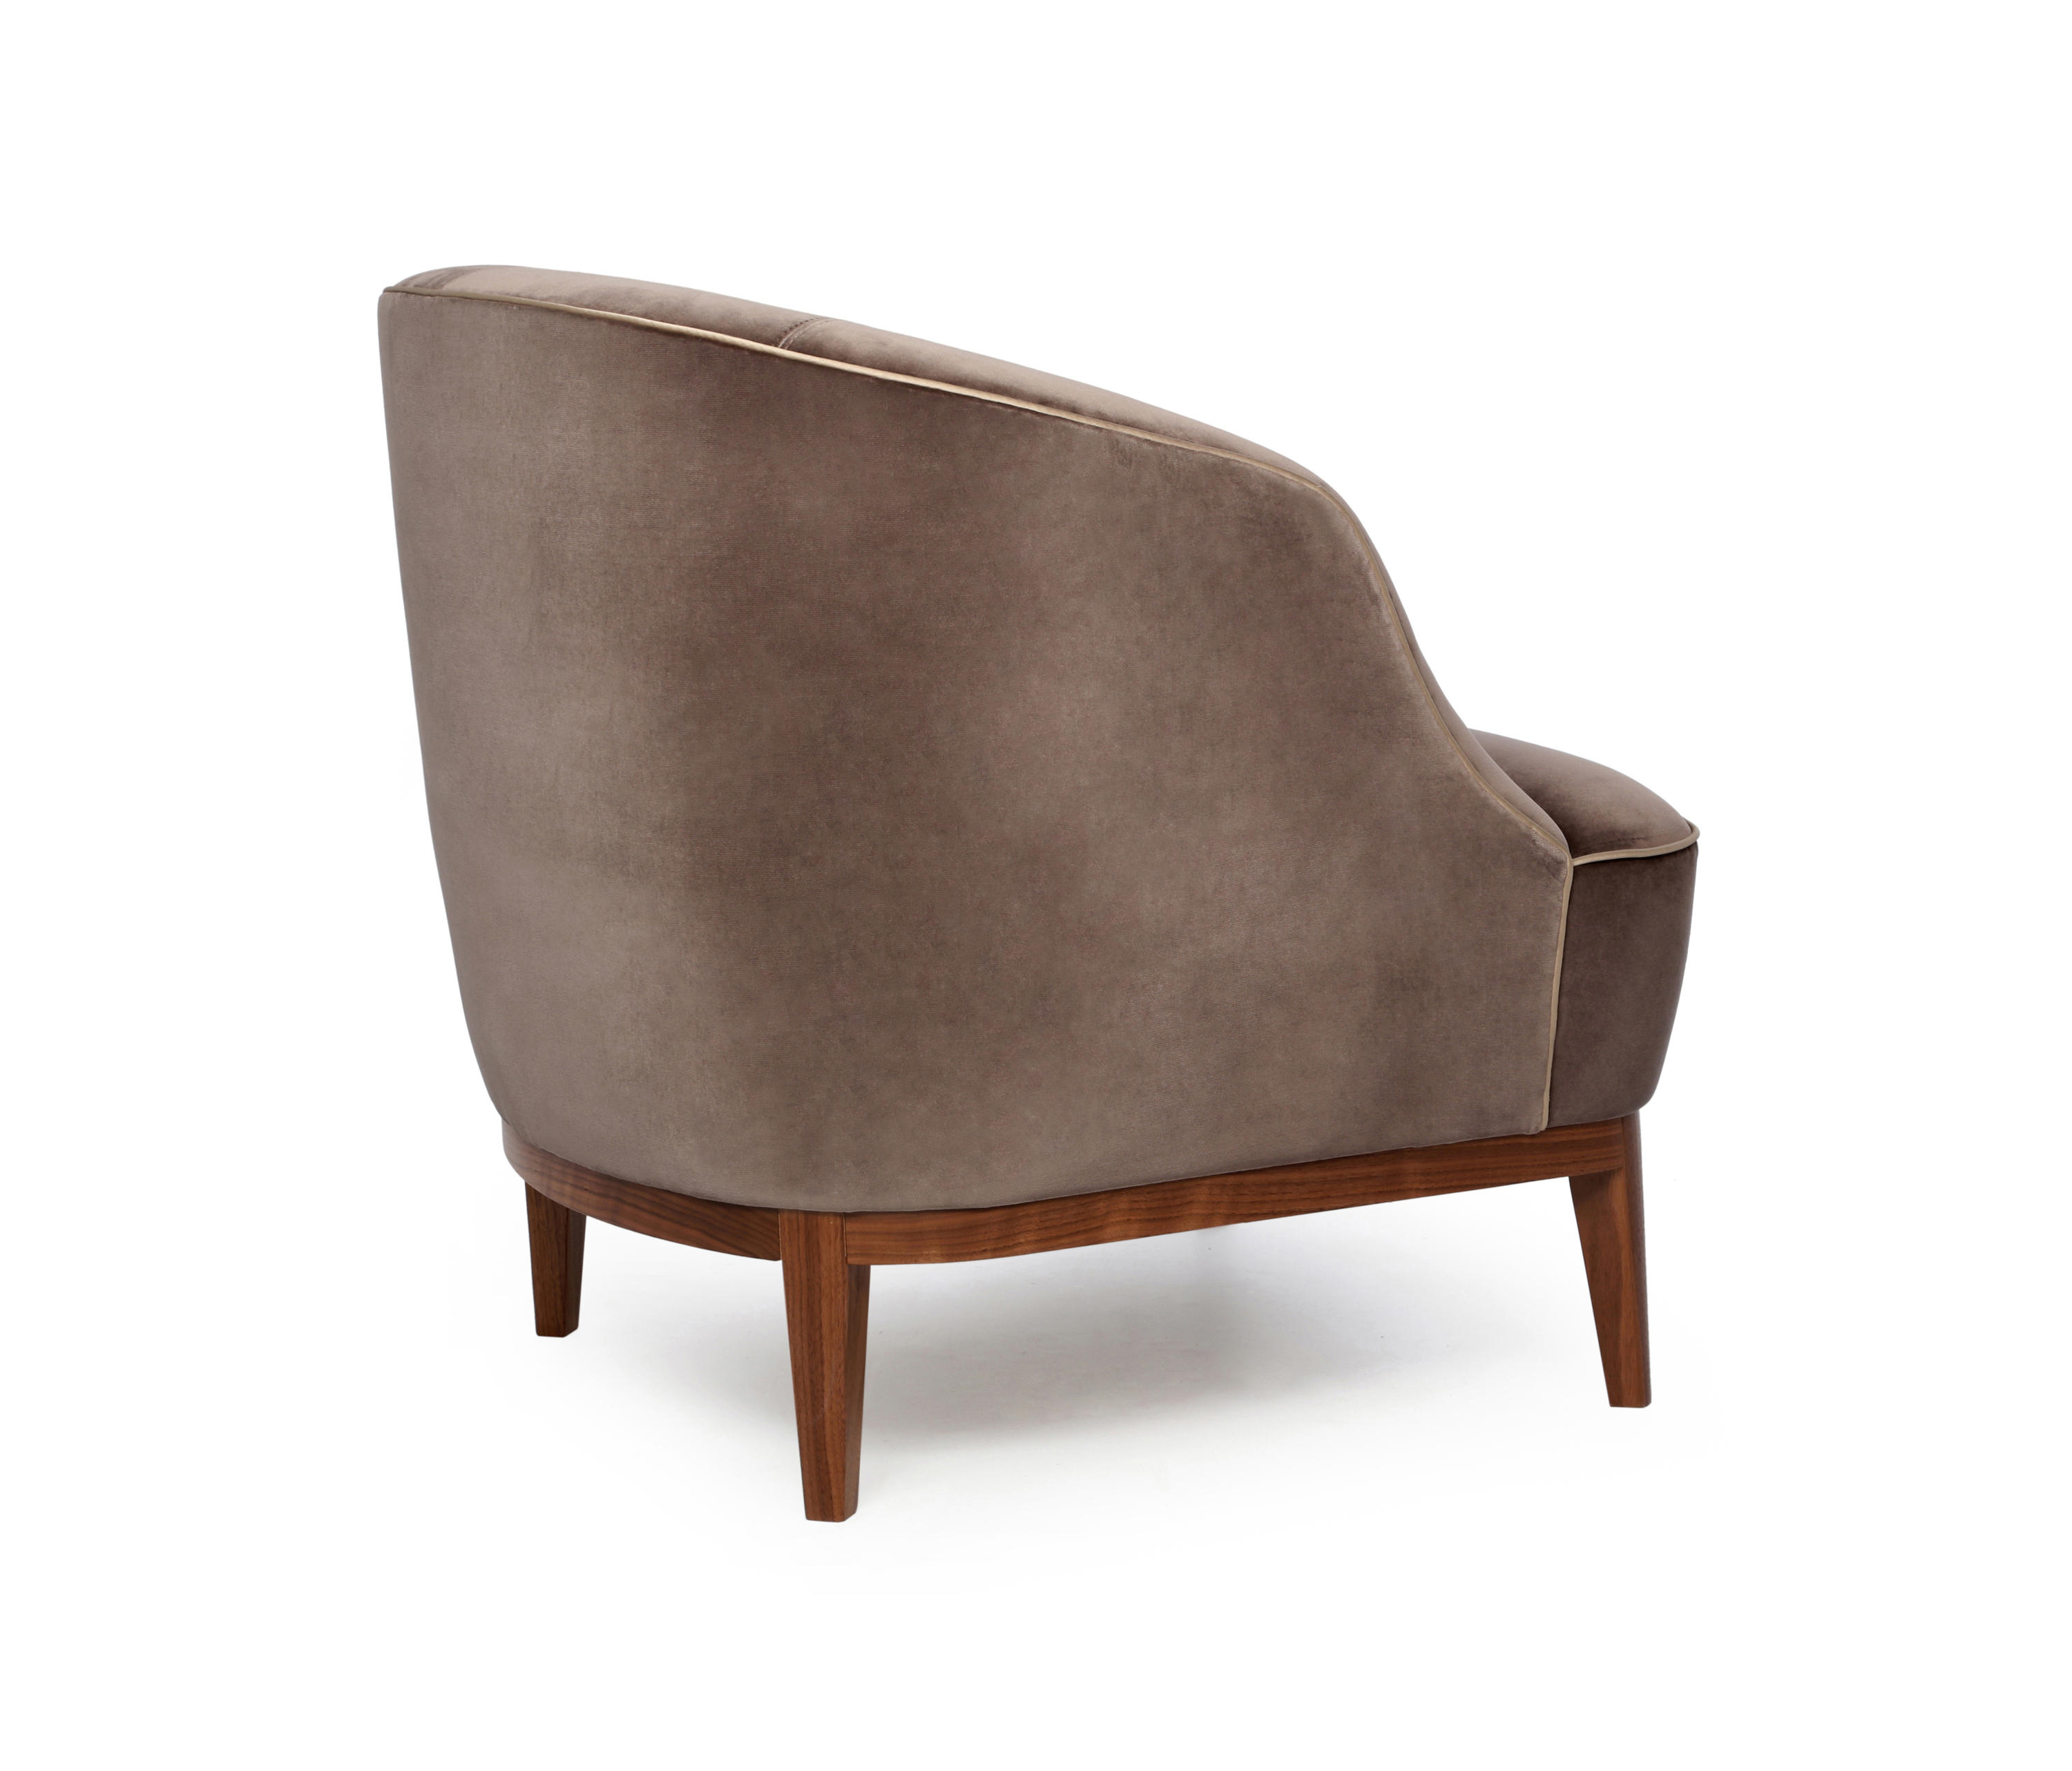 Lloyd occasional chair by The Sofa & Chair Company Ltd | Armchairs